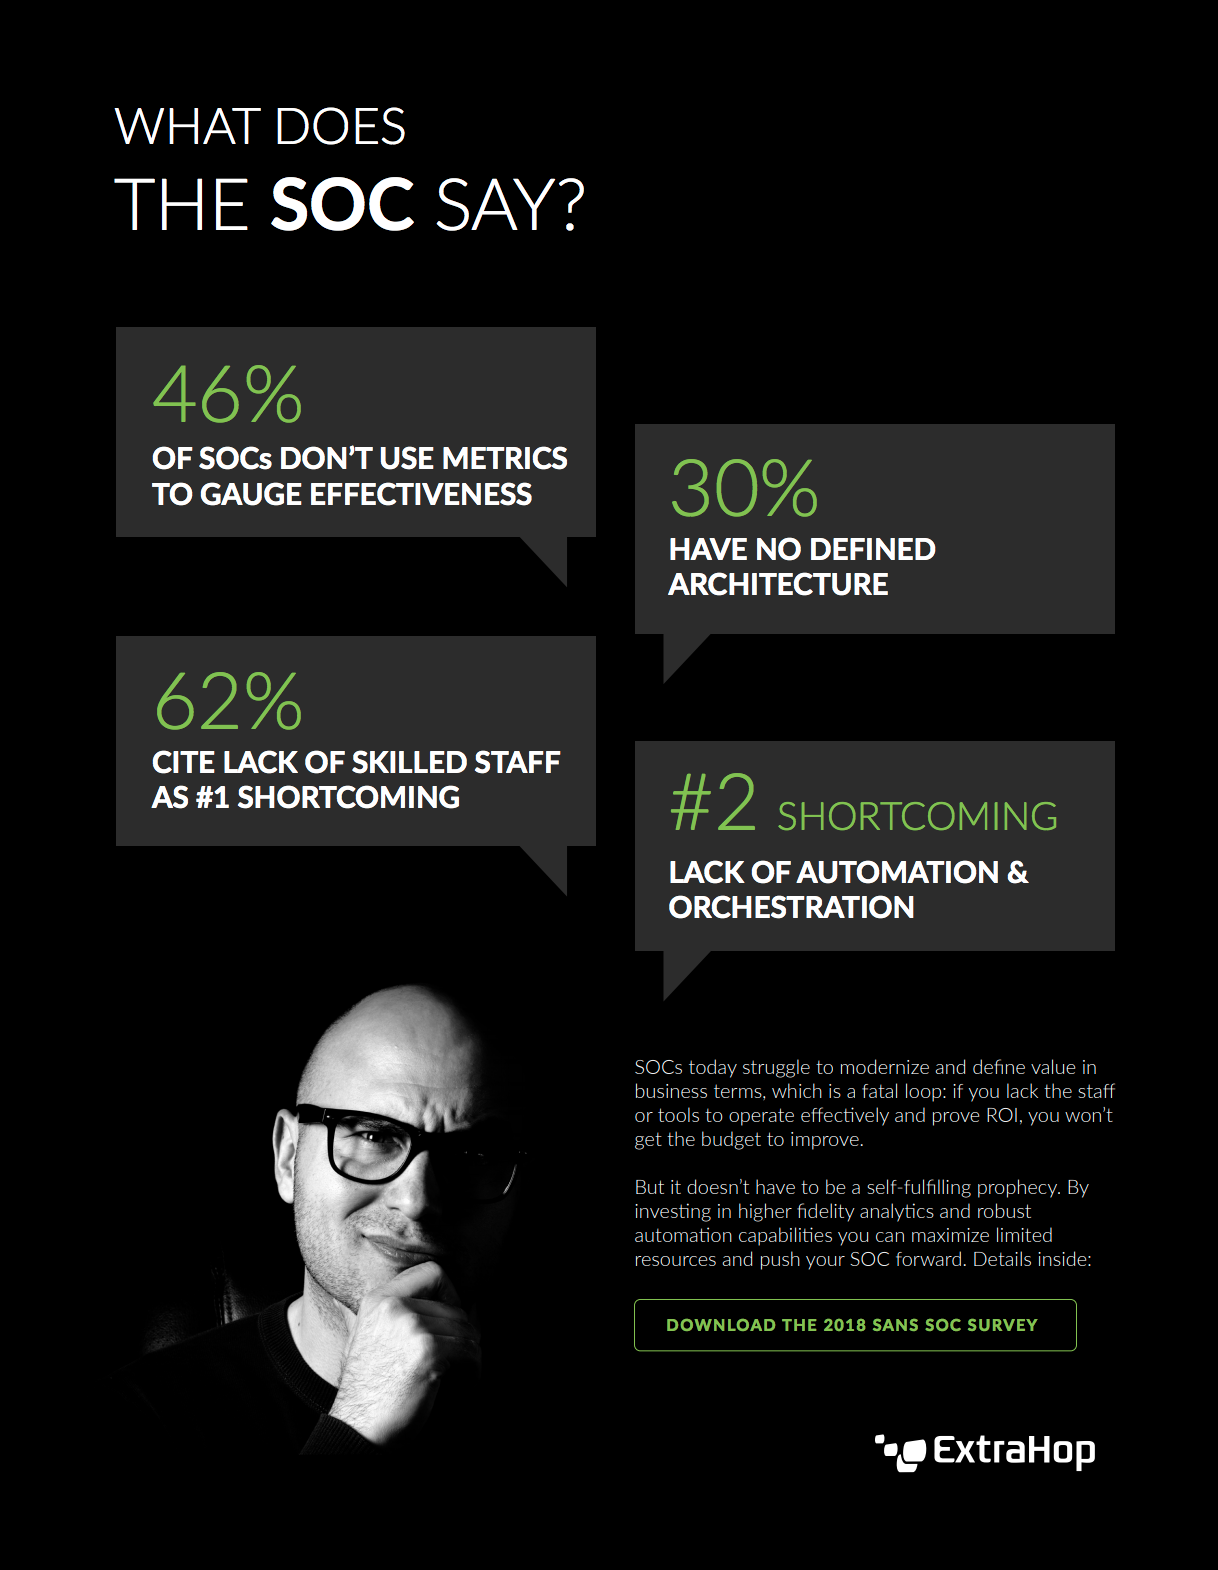 SANS 2018 SOC Survey Snapshot